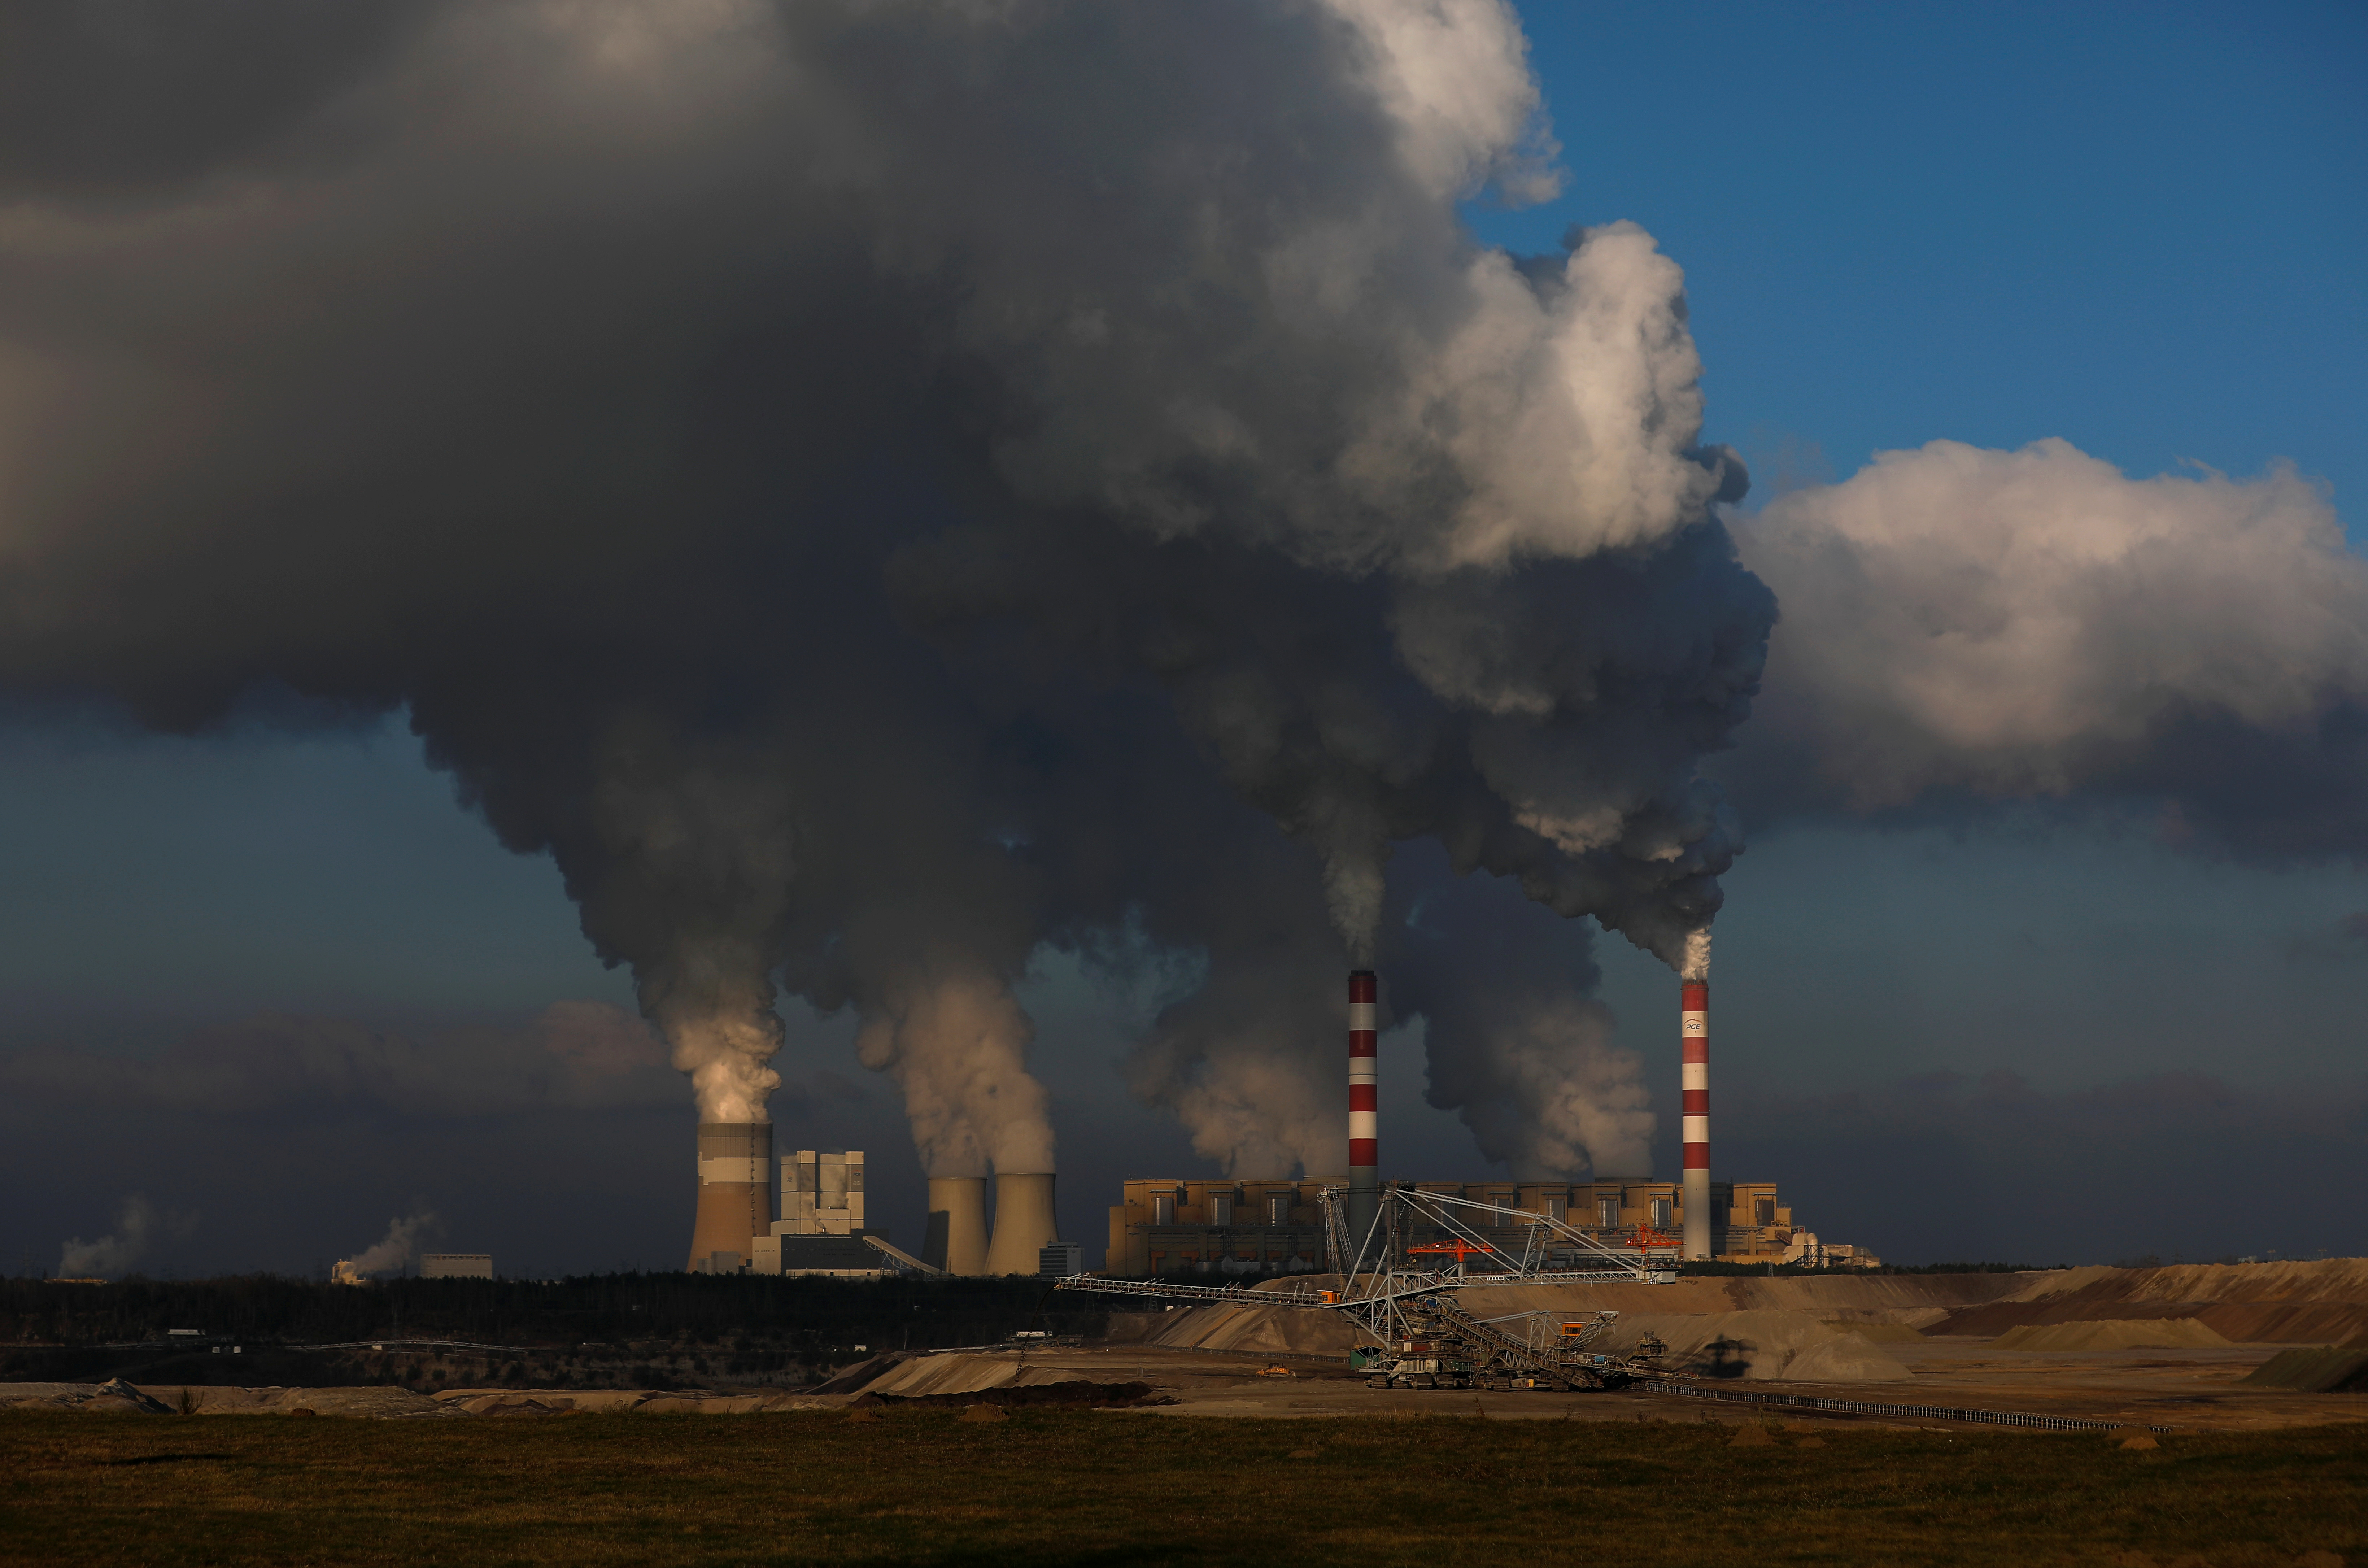 Investors managing $32 trillion in assets call for action on climate change